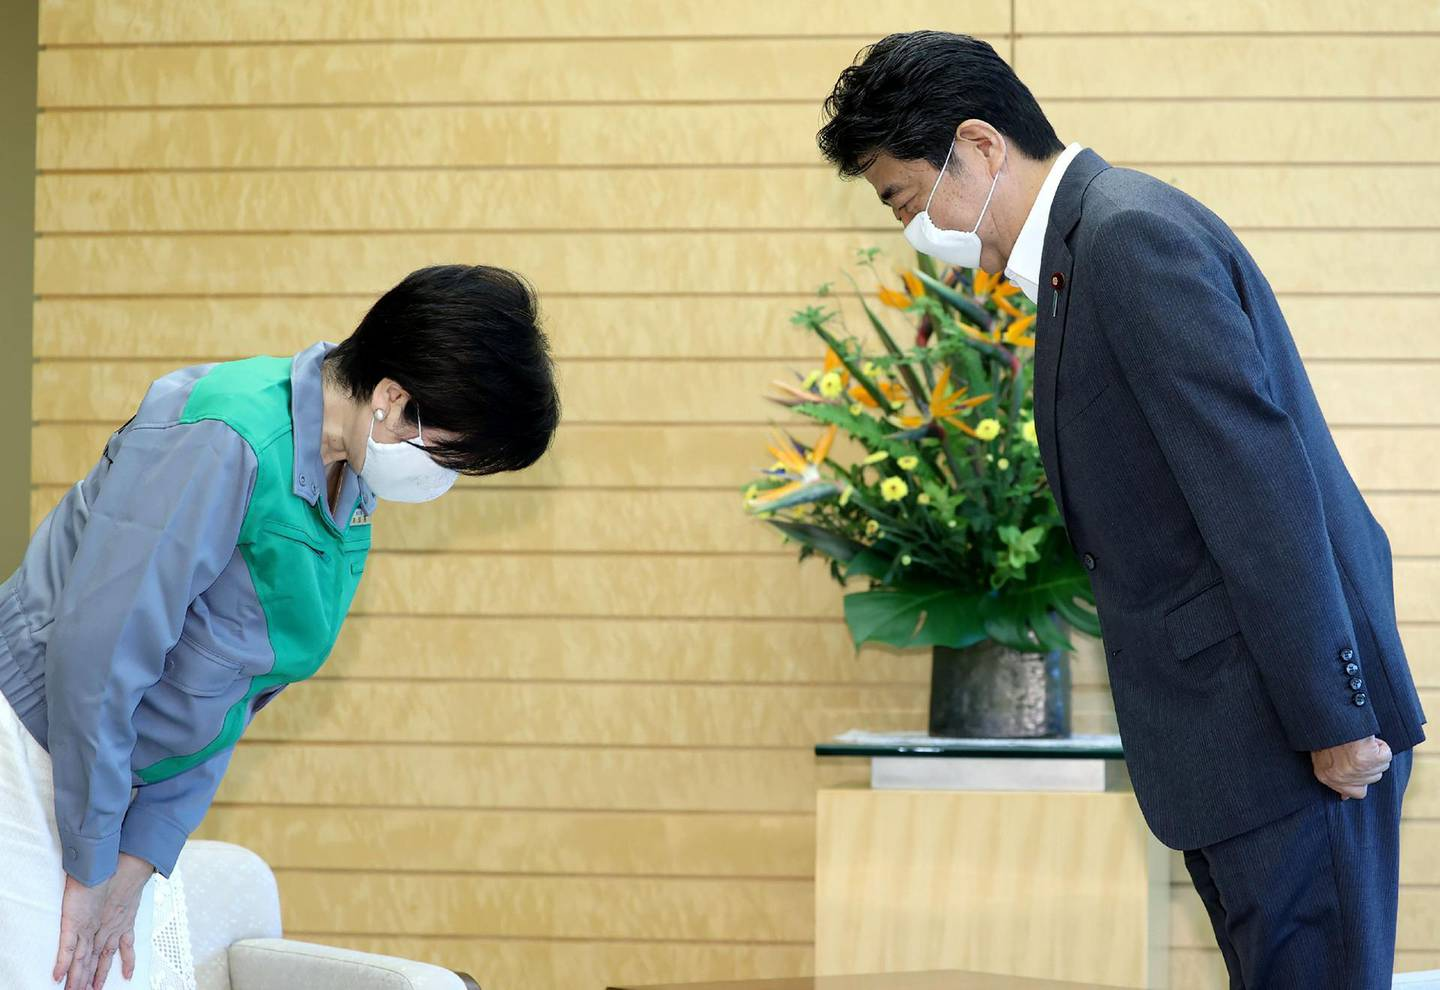 Japan's Prime Minister Shinzo Abe (R) and Tokyo governor Yuriko Koike (L) bow to greet each other during a meeting at the prime minister's official residence in Tokyo, on July 6, 2020. Tokyo governor Yuriko Koike declared victory on July 5, 2020 in the vote to elect the leader of one of the world's most populous cities and immediately vowed to step up the fight against a recent coronavirus resurgence. - Japan OUT  / AFP / JIJI PRESS / STR